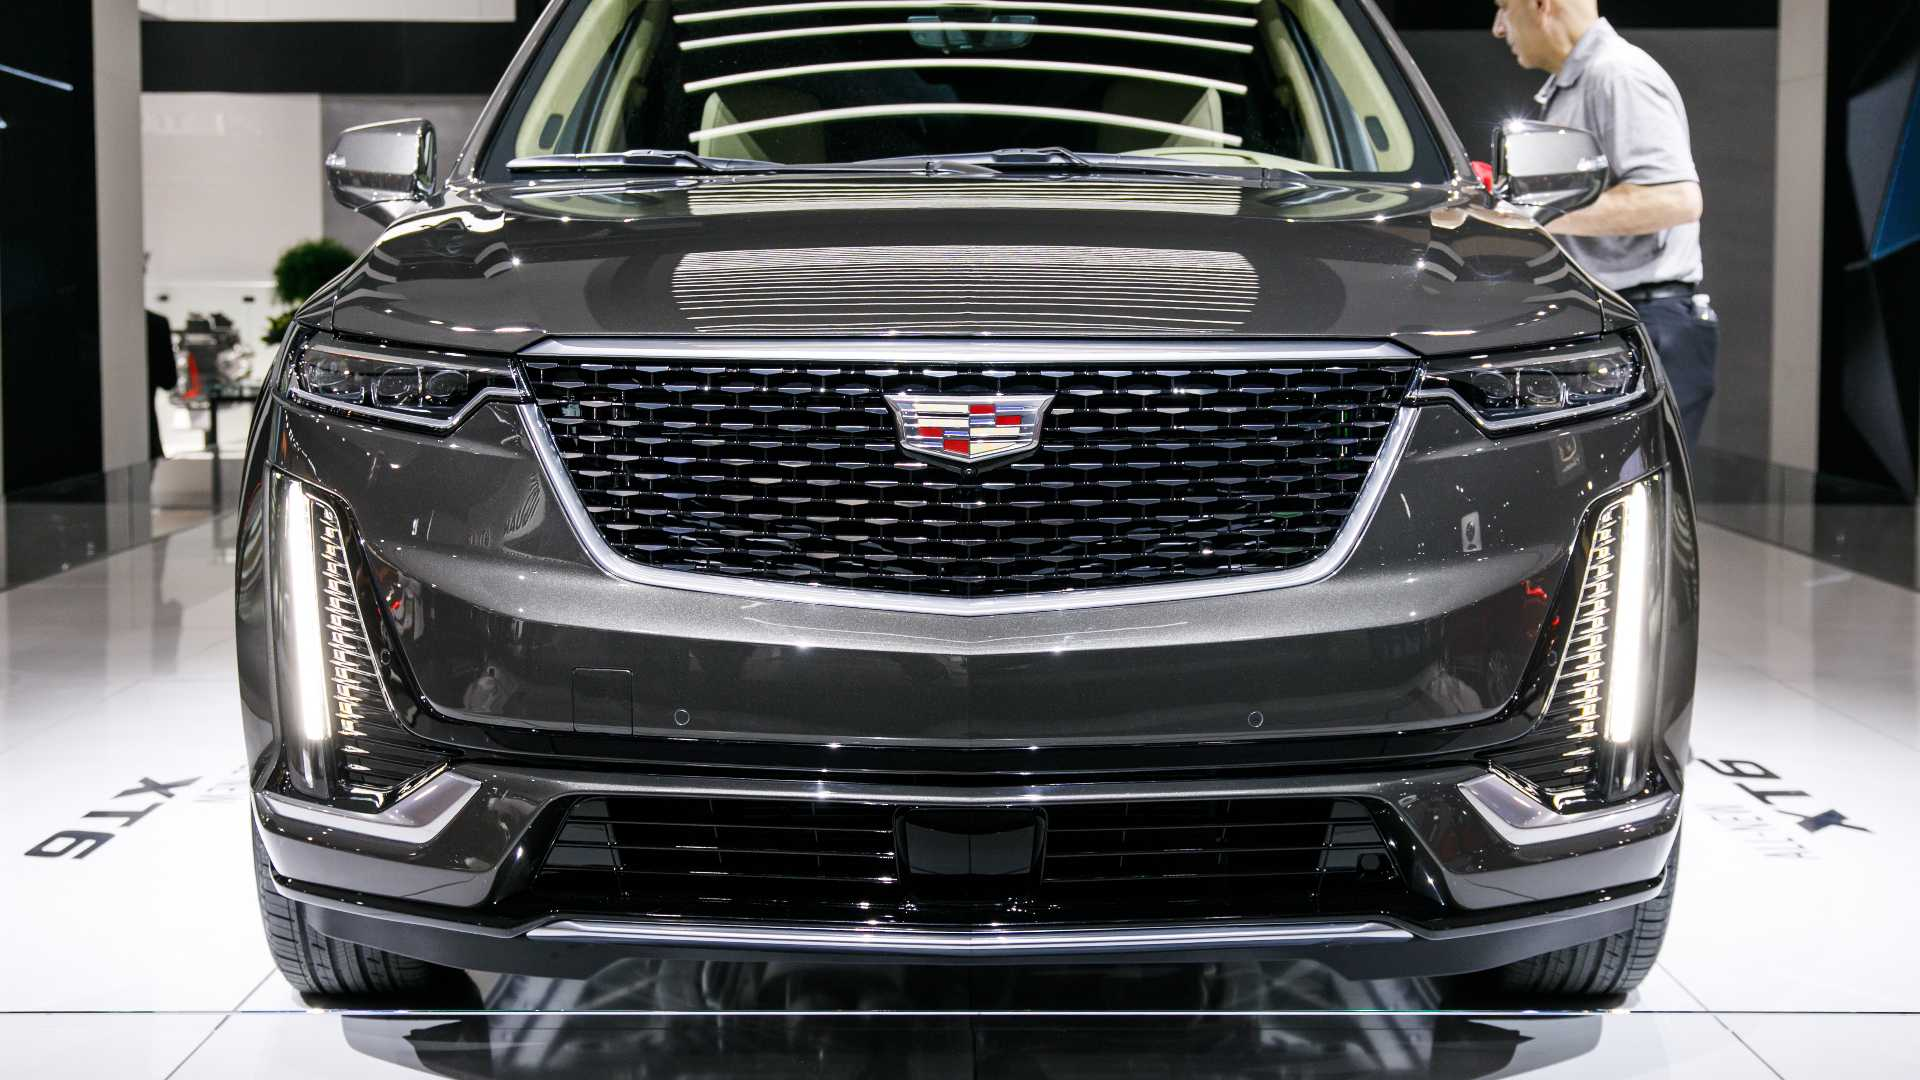 18 All New 2020 Cadillac Xt6 Style by 2020 Cadillac Xt6